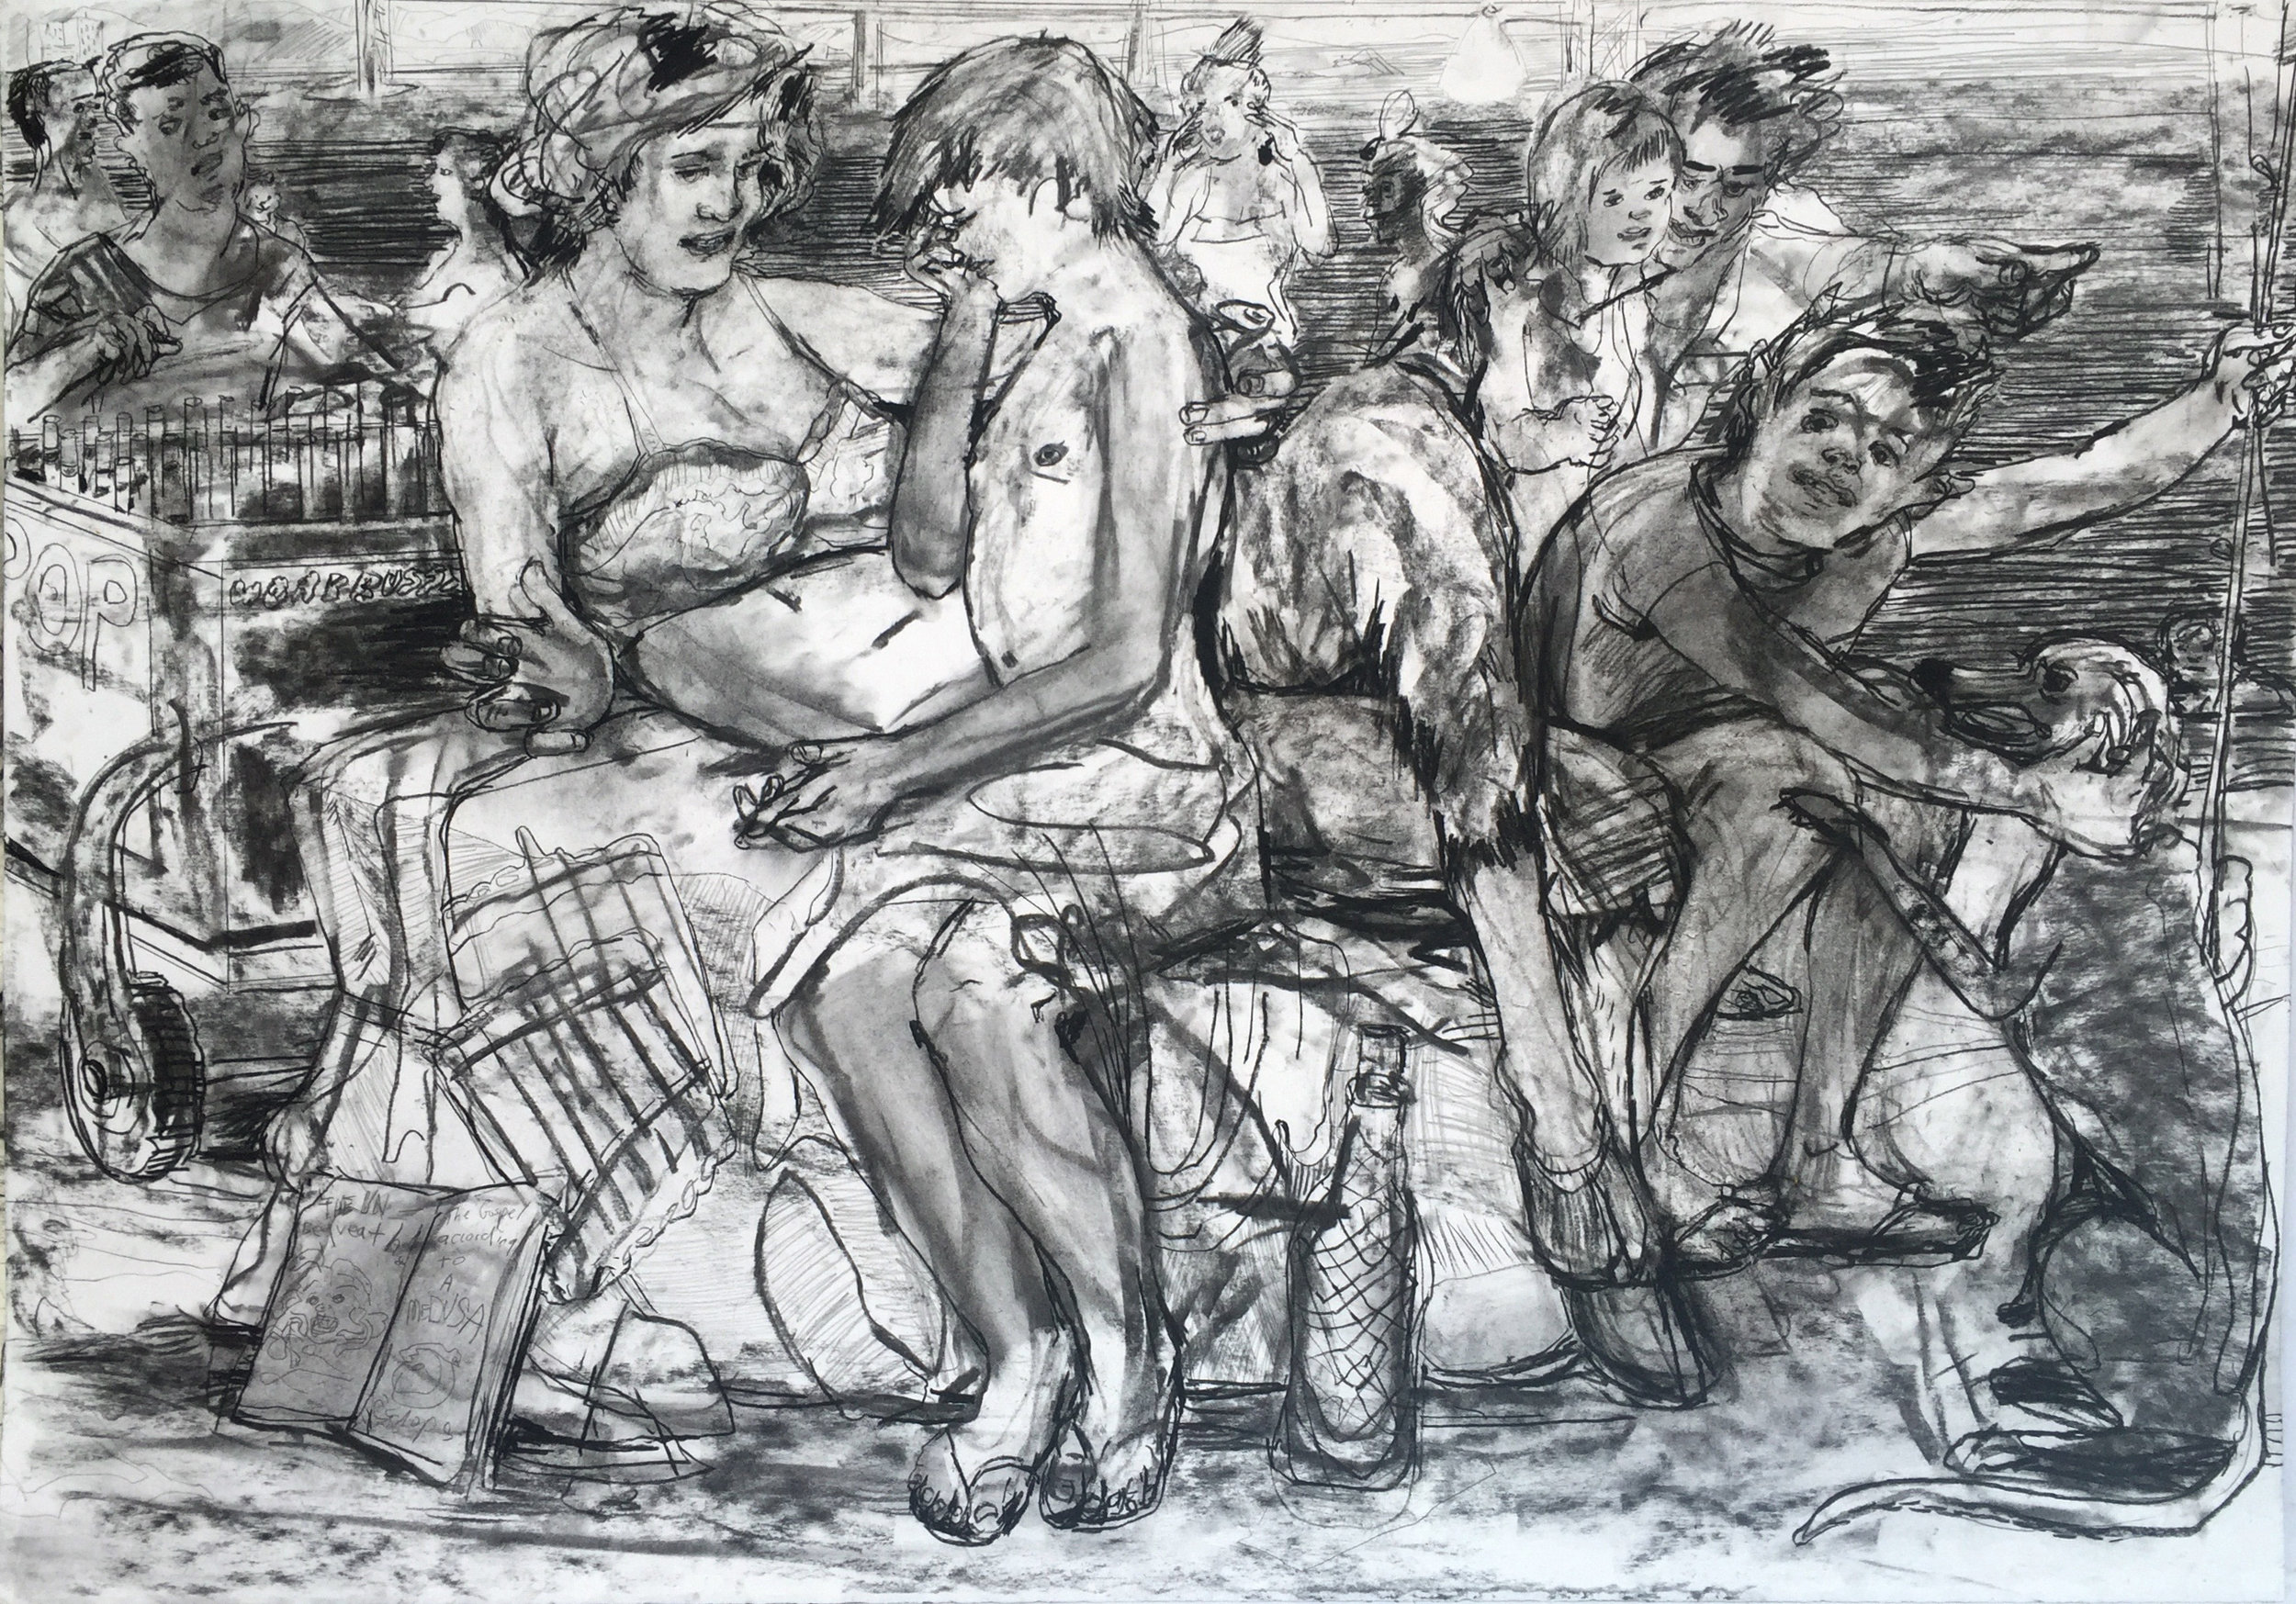 Beach Lessons?  28 by 40 inches charcoal on paper 2017.jpg